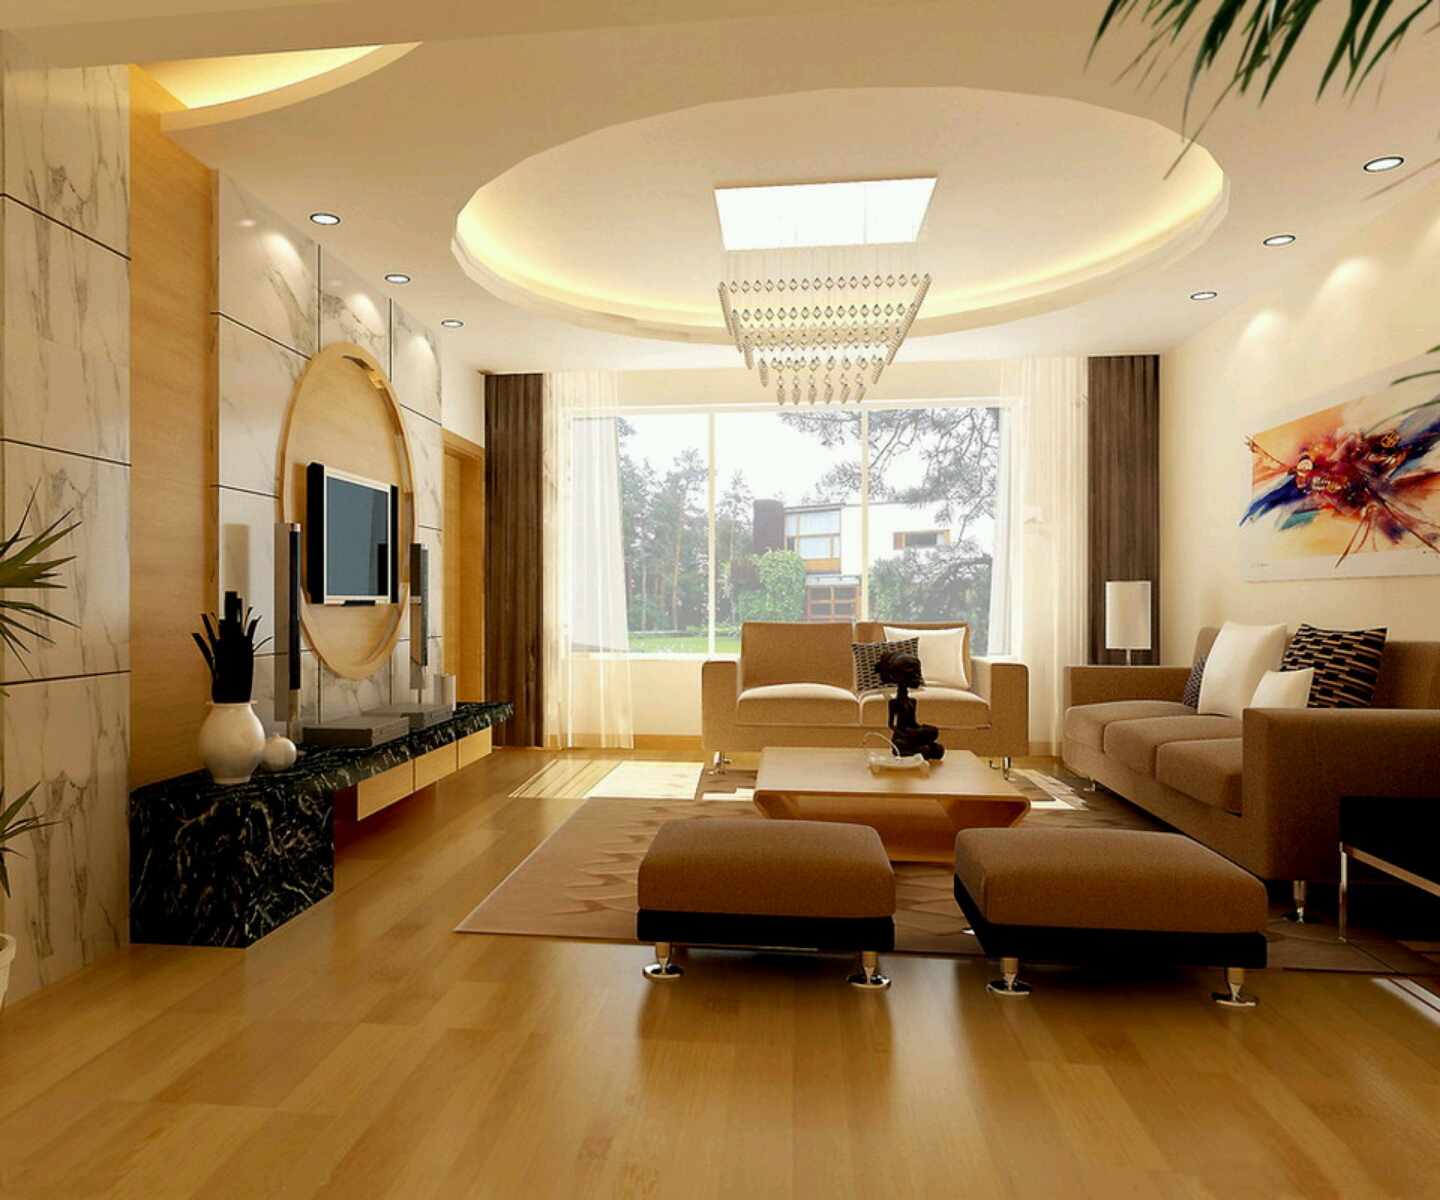 New home designs latest modern interior decoration for Interior design for living room images